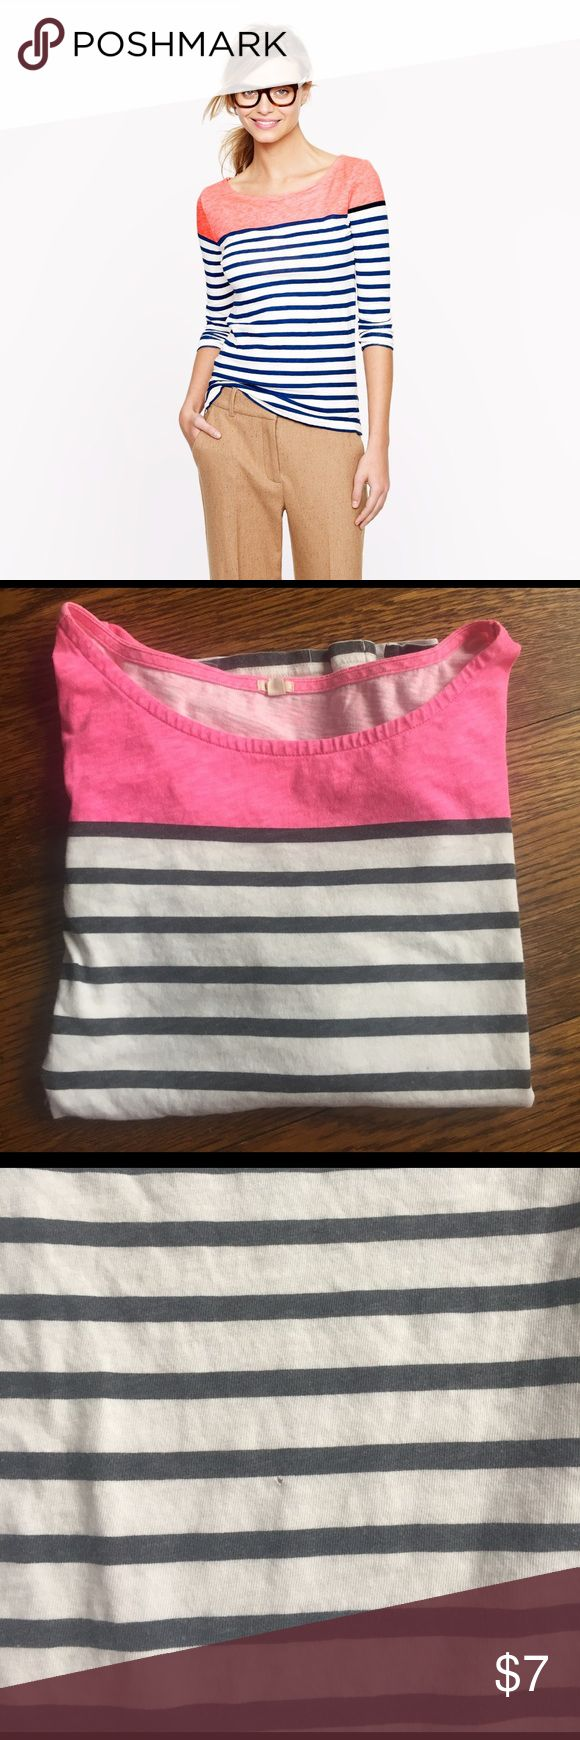 J crew top Cotton stripped top. 3/4 sleeves. The shirt is bright pink on top. Tiny tiny hole on the back- see pics. Still cute and could be sewn up. J. Crew Tops